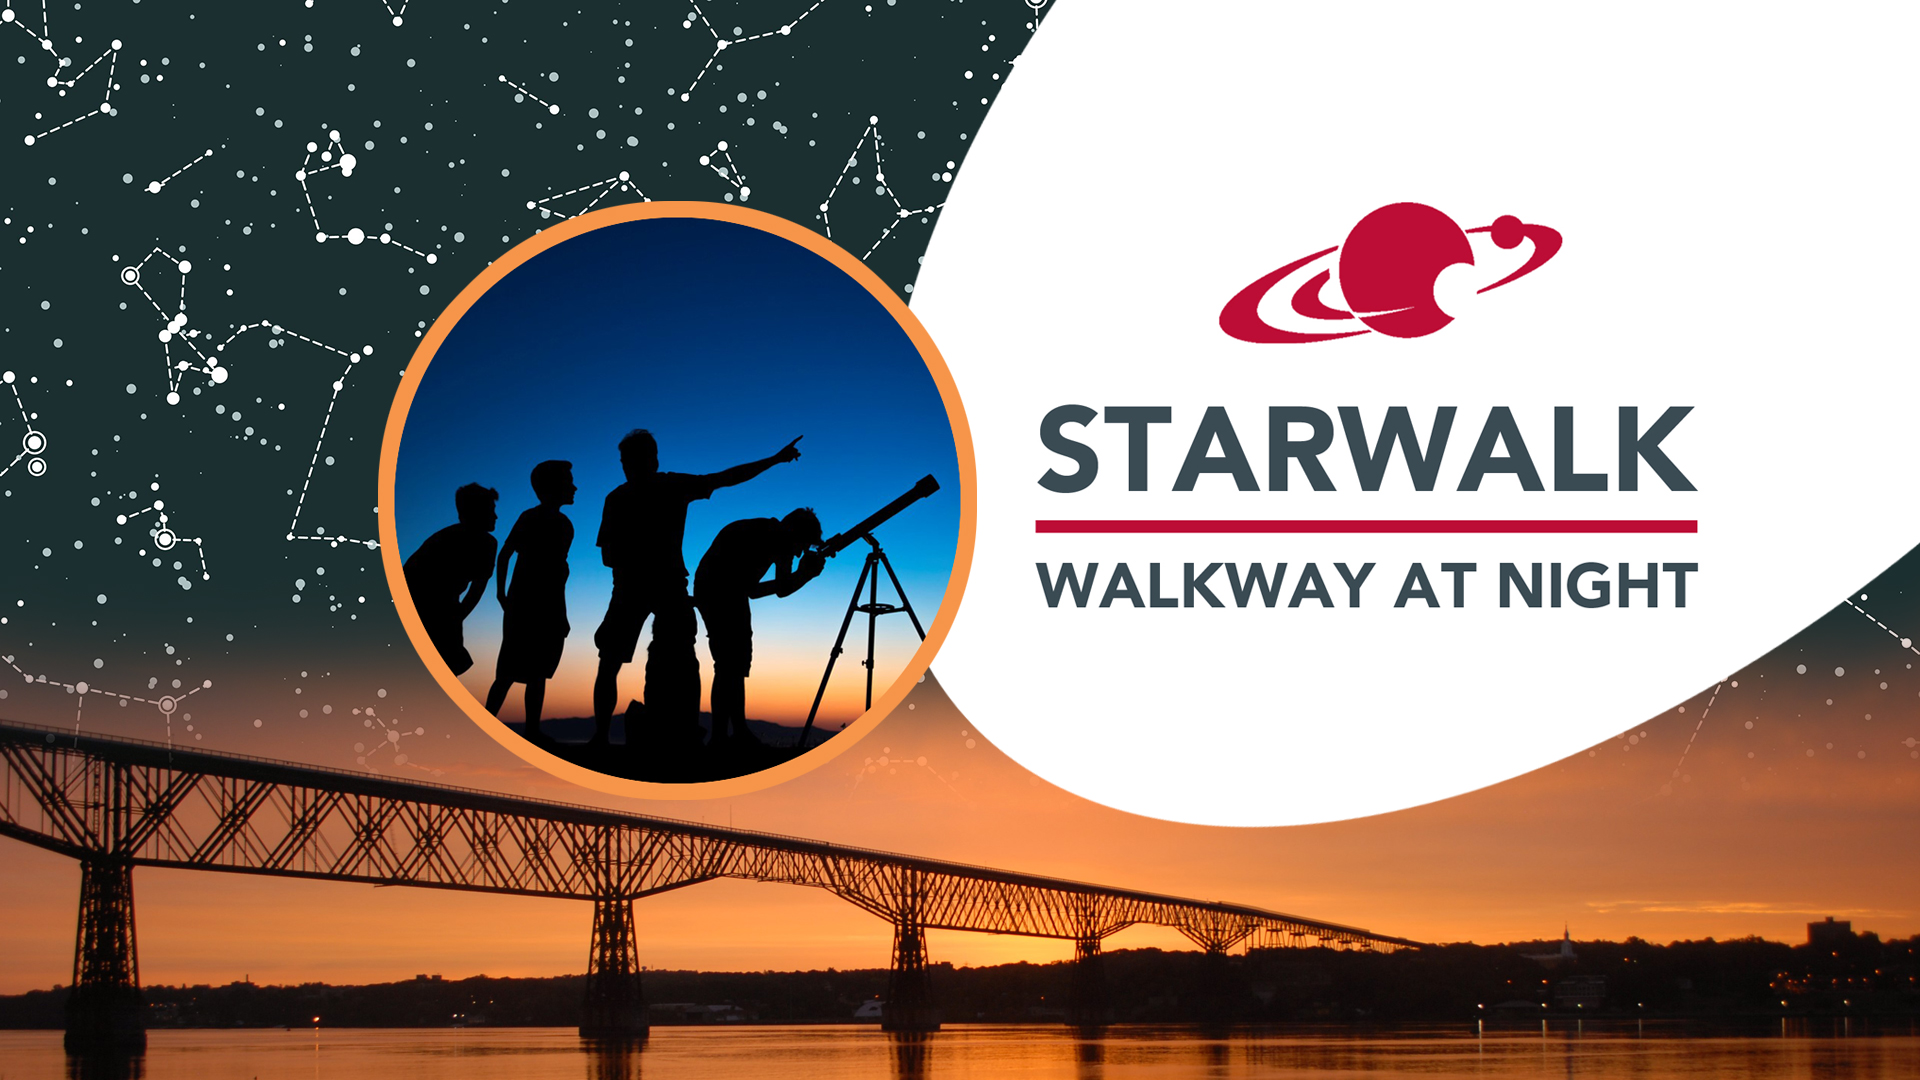 STARWALKS on Walkway Over the Hudson